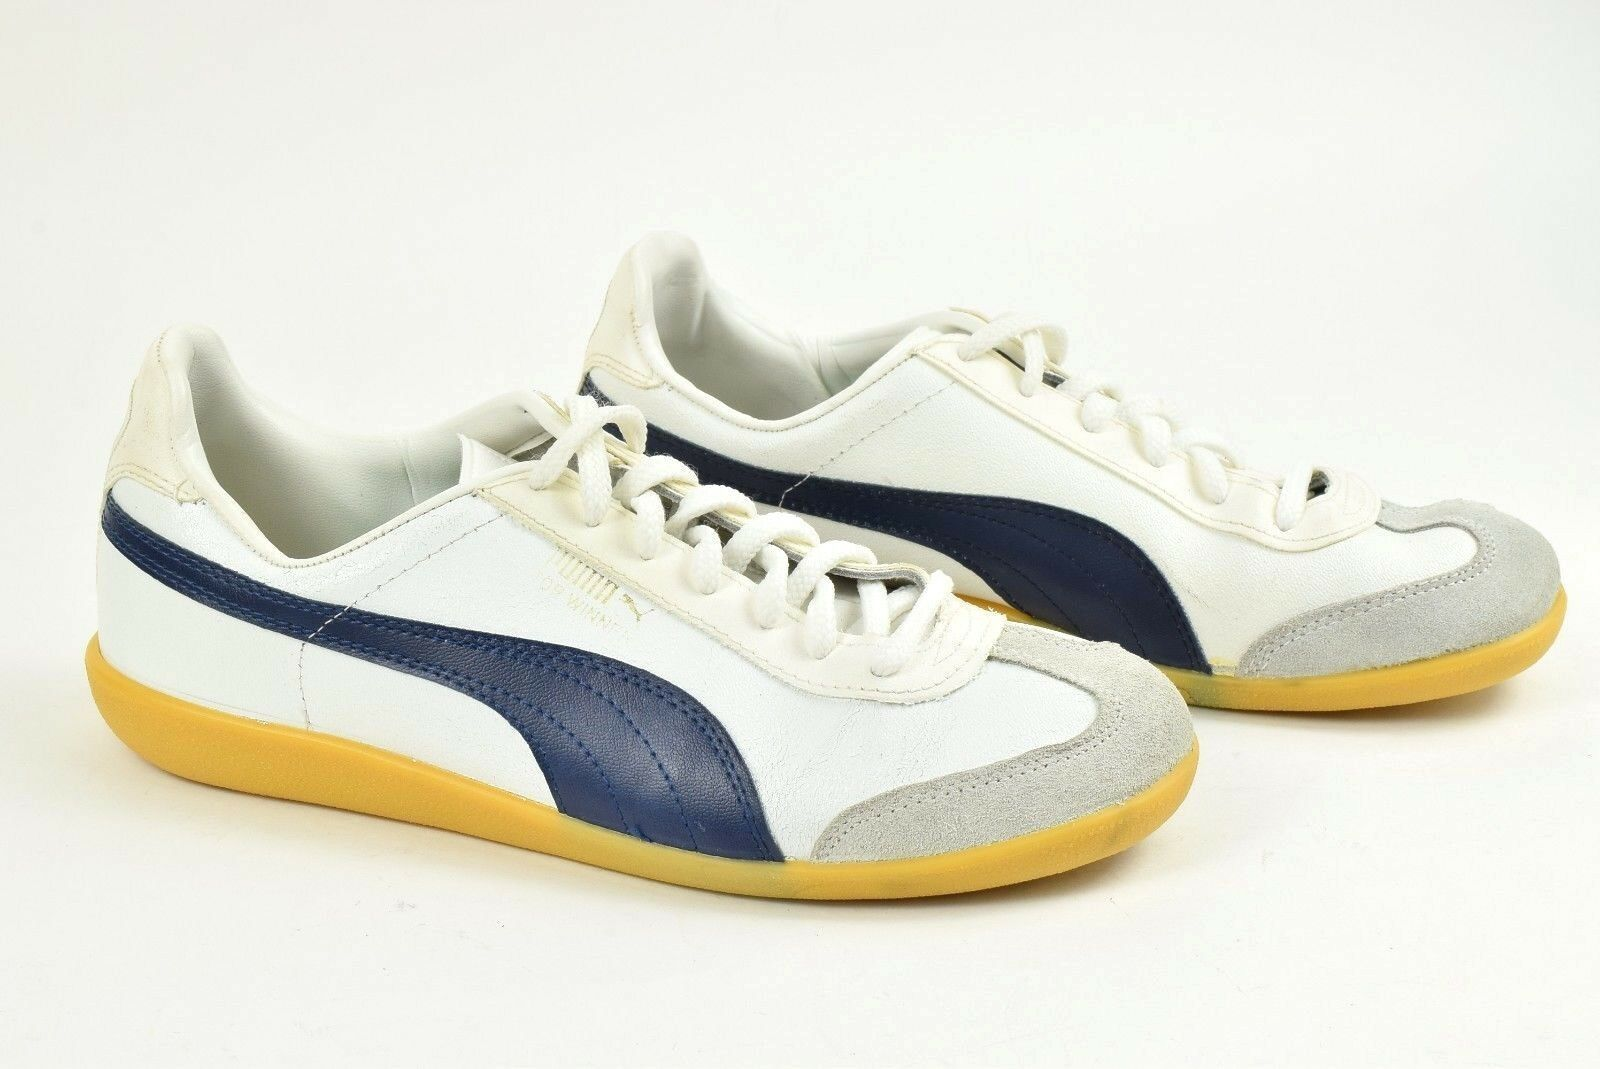 Puma Top Winner 1980 Vintage Trainers shoes Made in